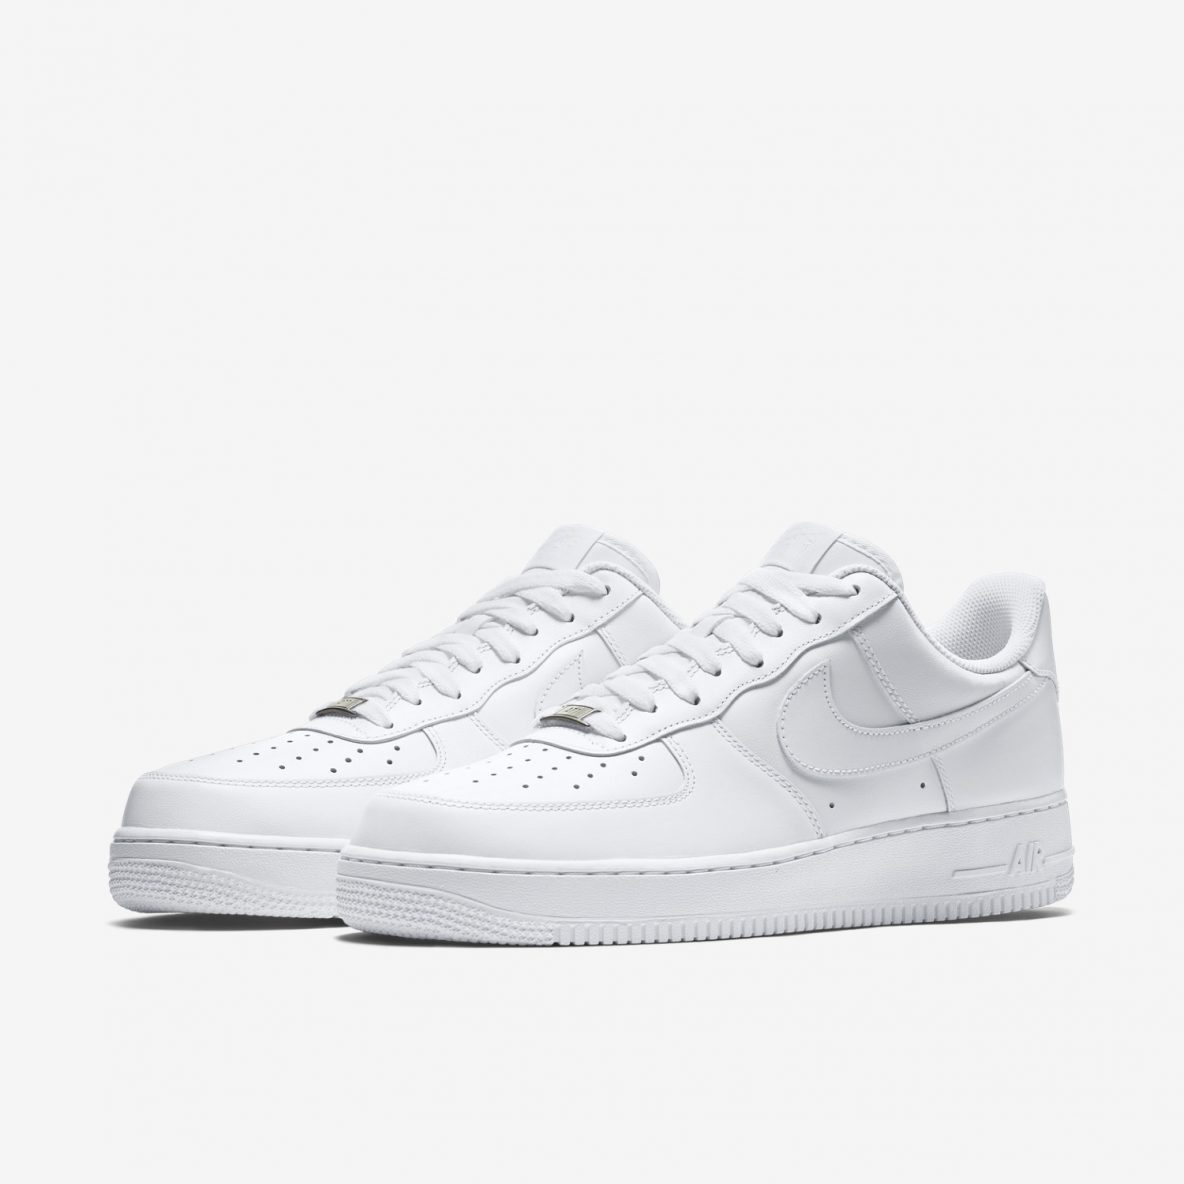 timeless design 5901c c3891 nike air force 1